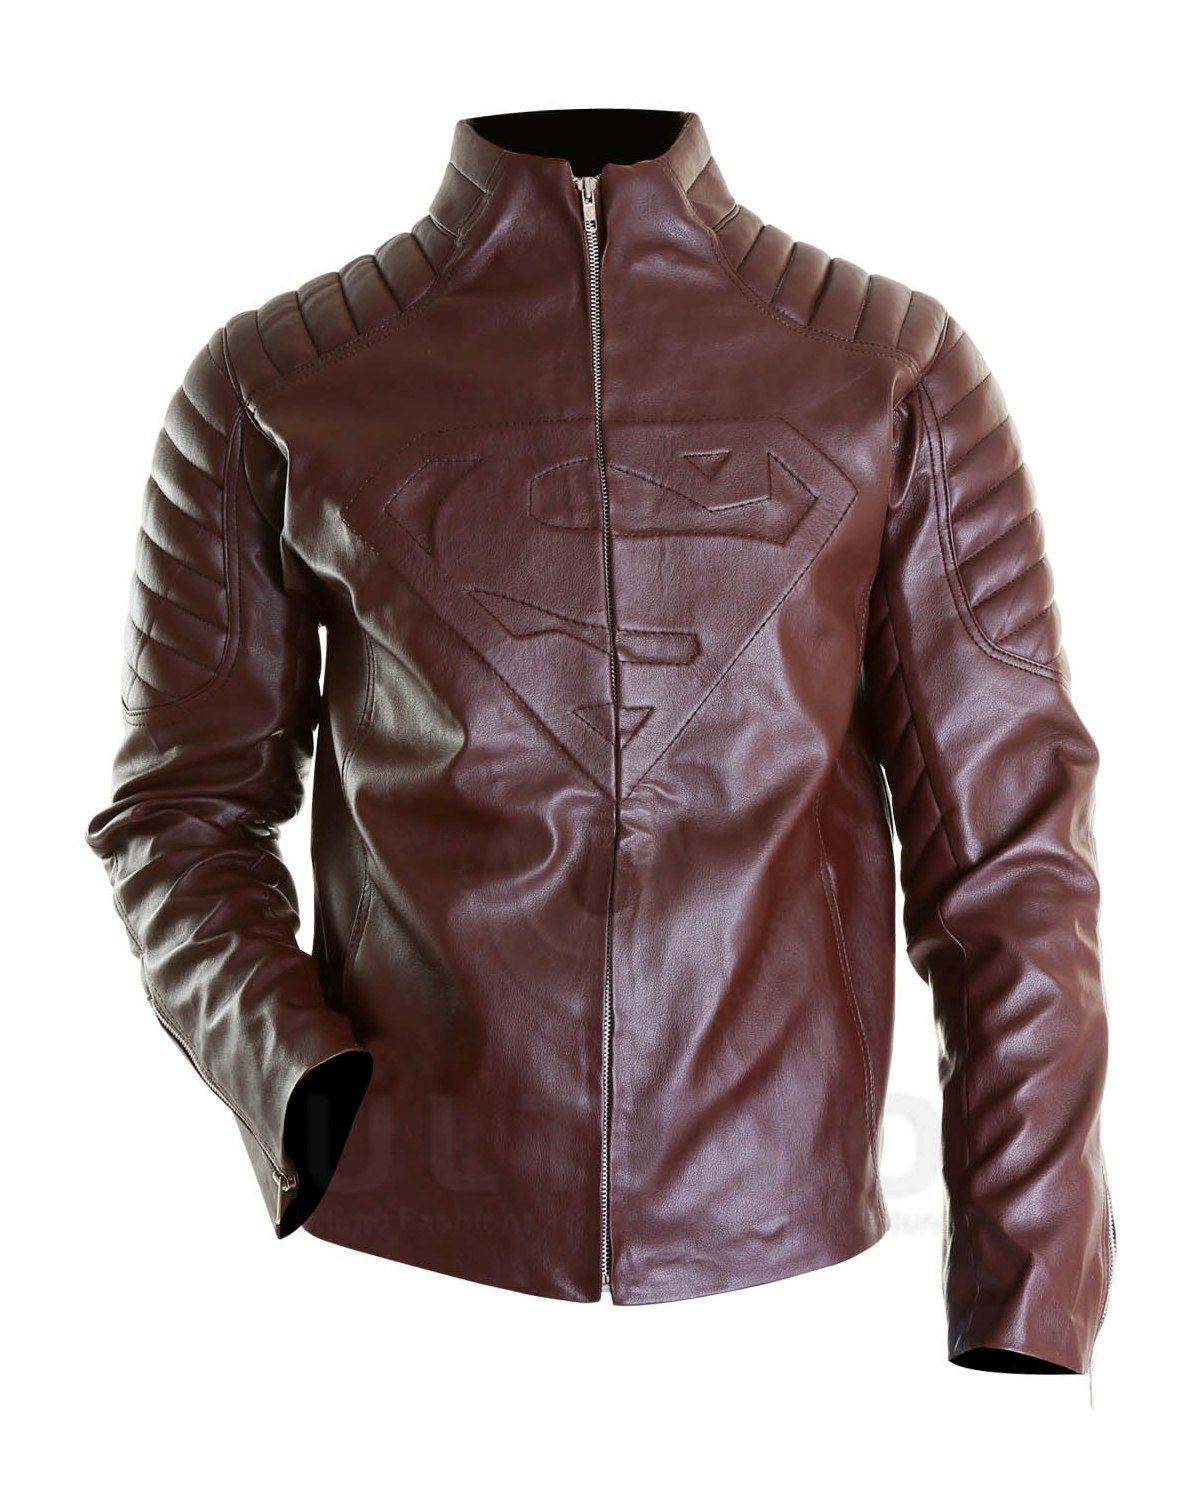 Superman Brown Smallville Leather Jacket This jacket is